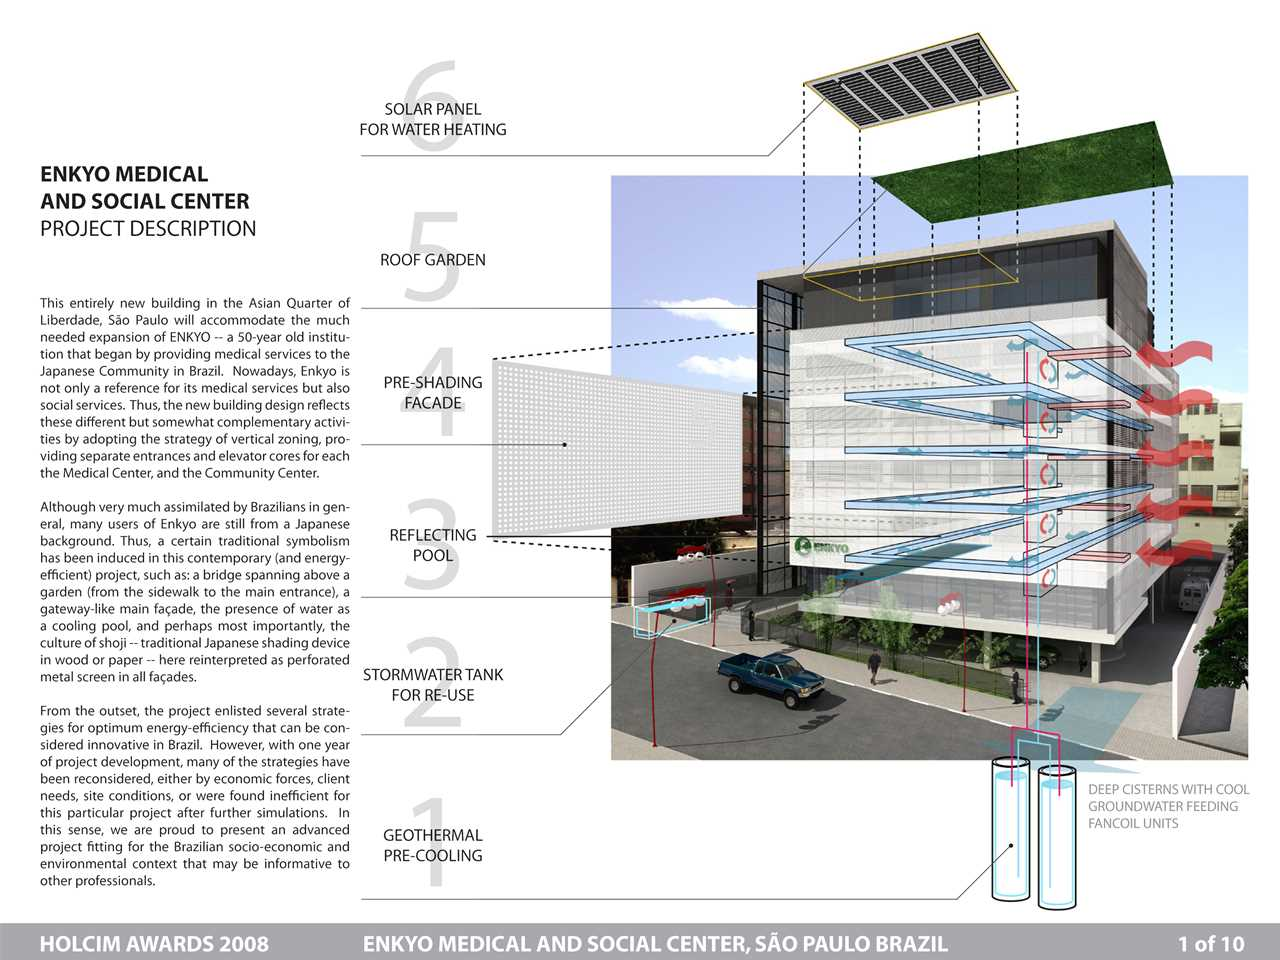 Holcim Awards Acknowledgement prize 2008 Latin America: Energy-efficient medical and …